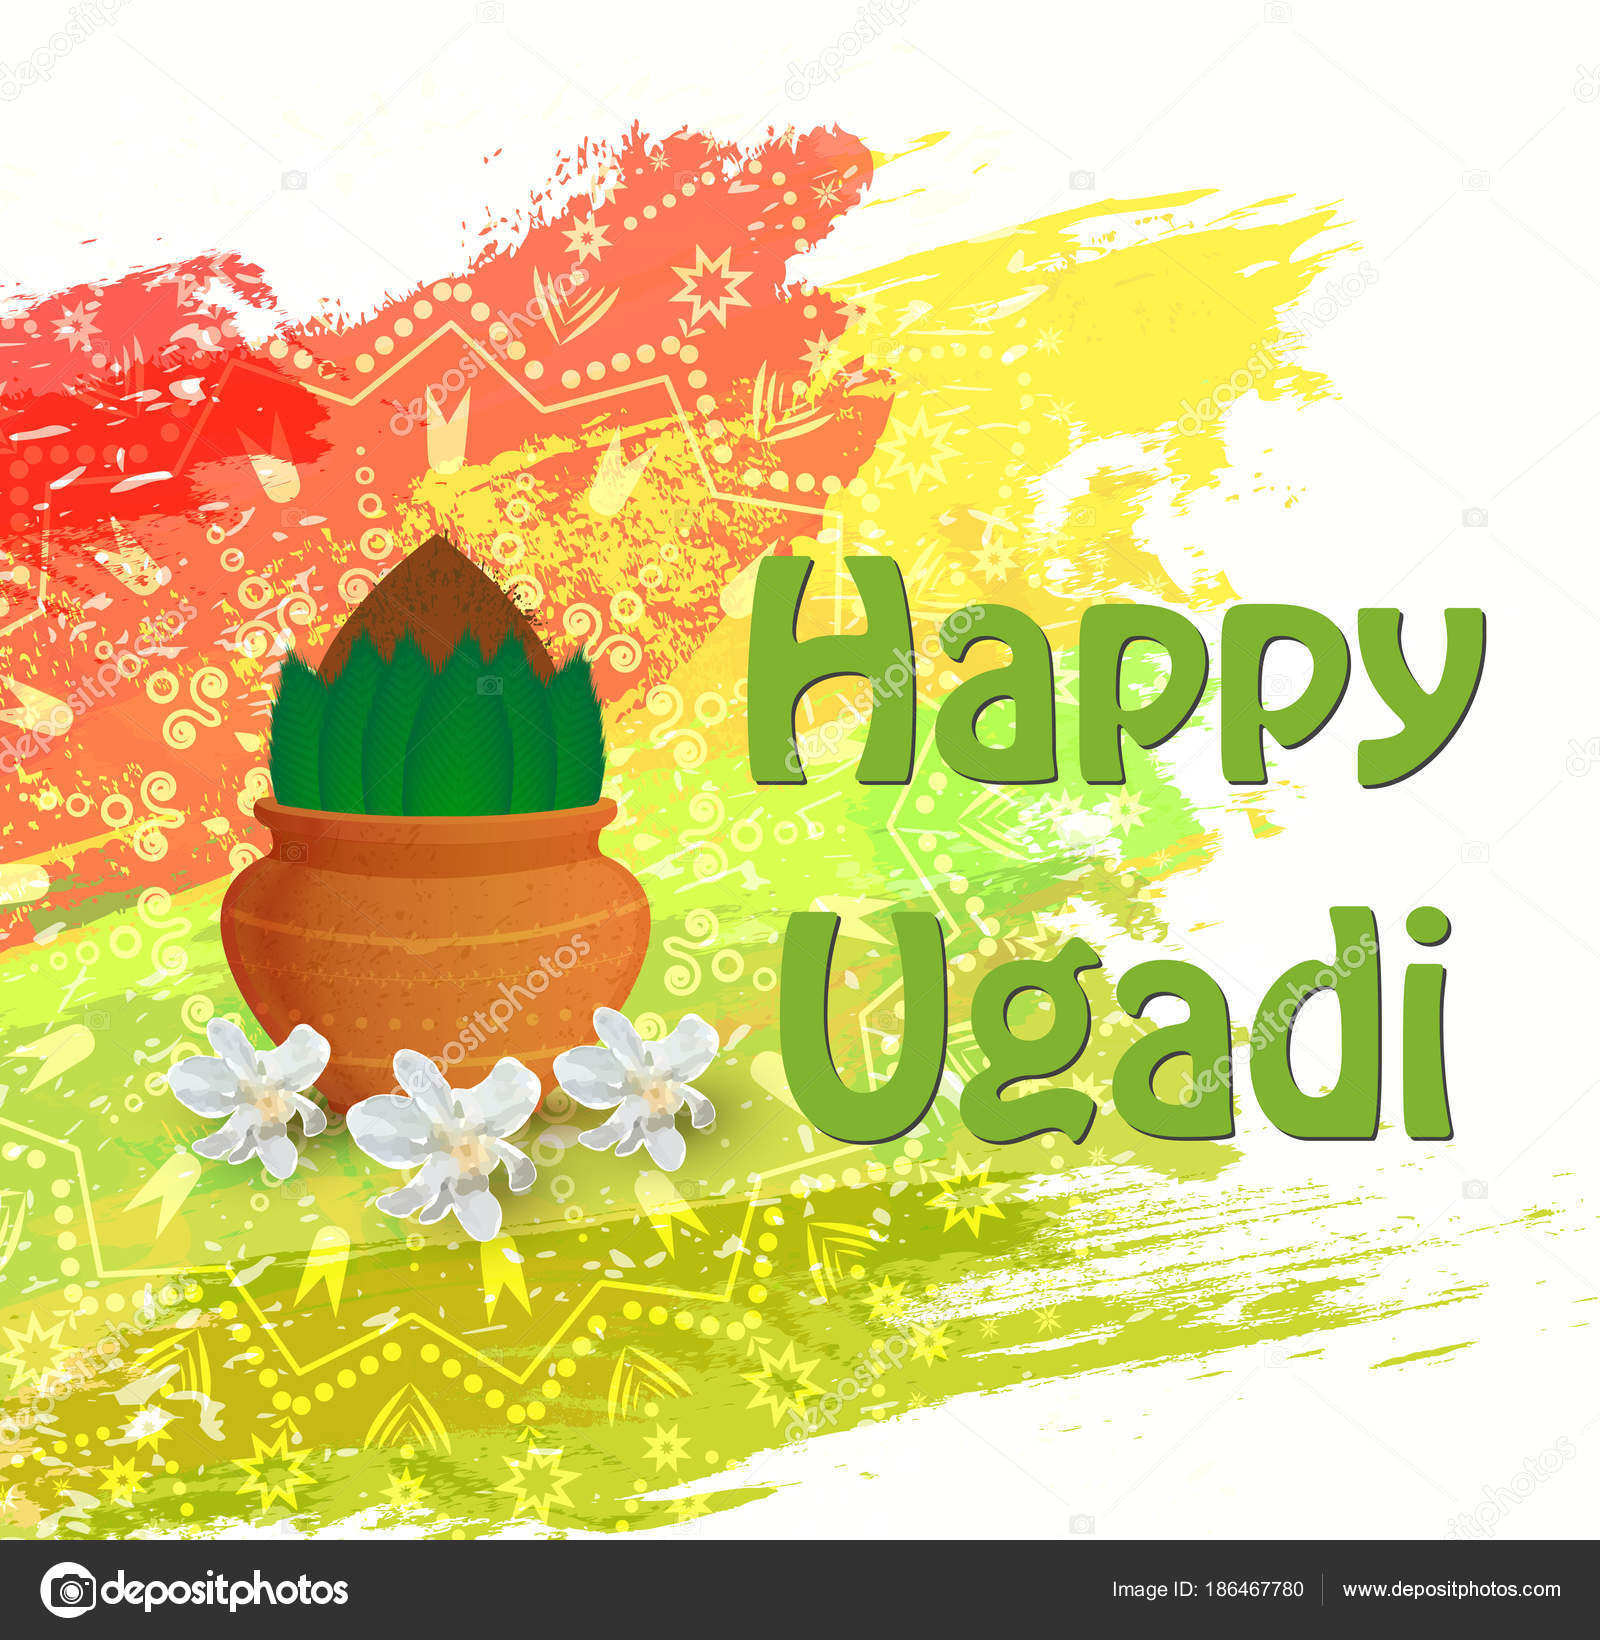 Happy ugadi card stock vector delakryz3gmail 186467780 happy ugadi card stock vector m4hsunfo